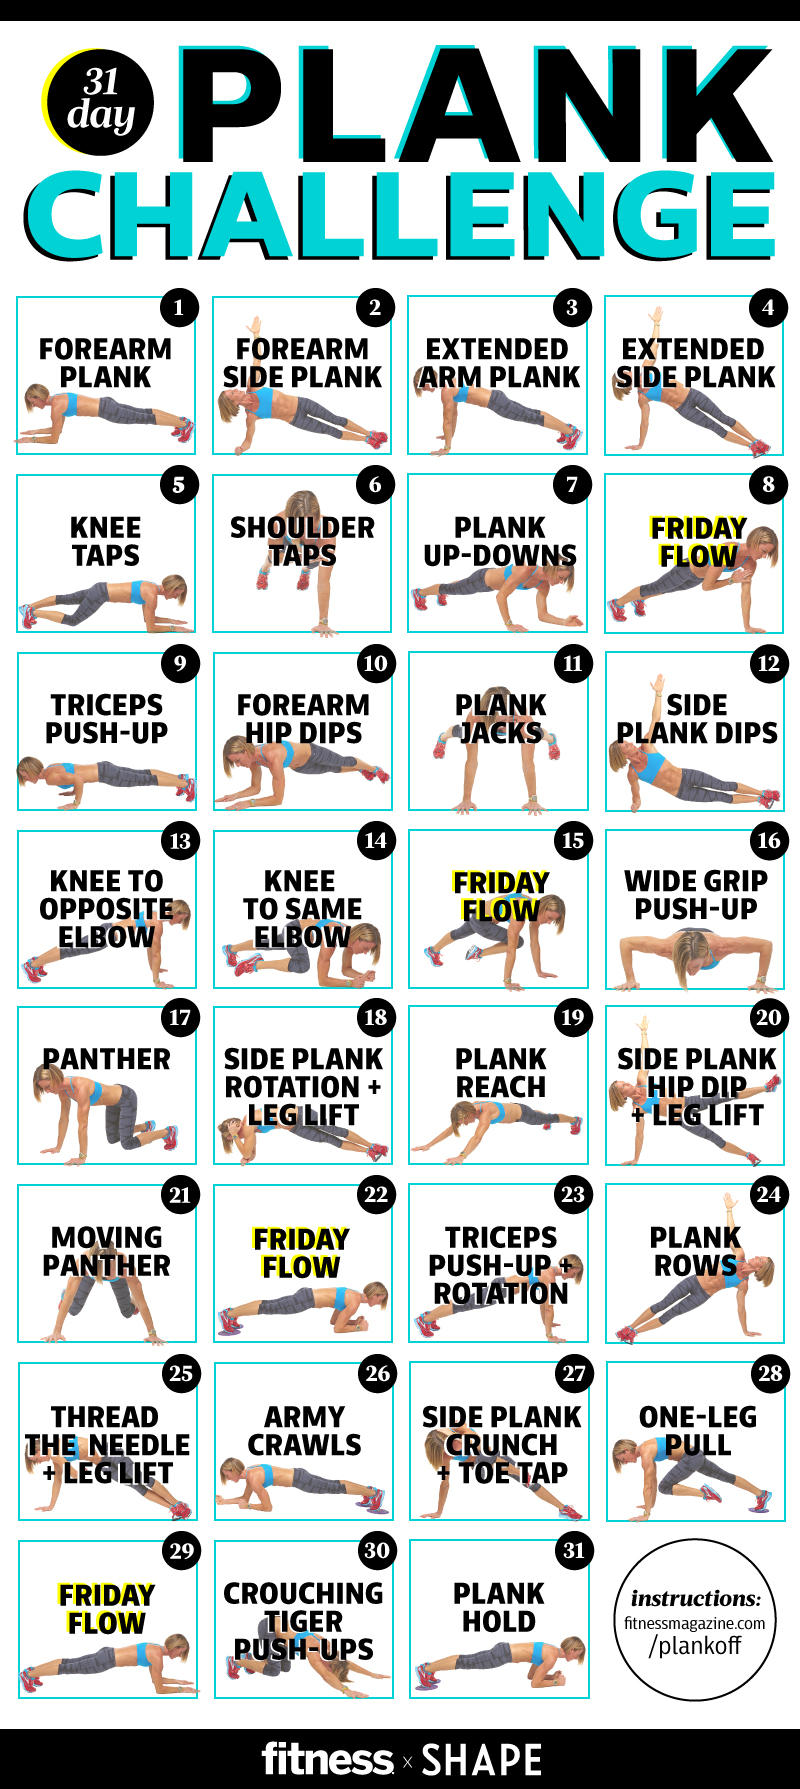 Plank Challenge: The Ultimate Guide to Planks